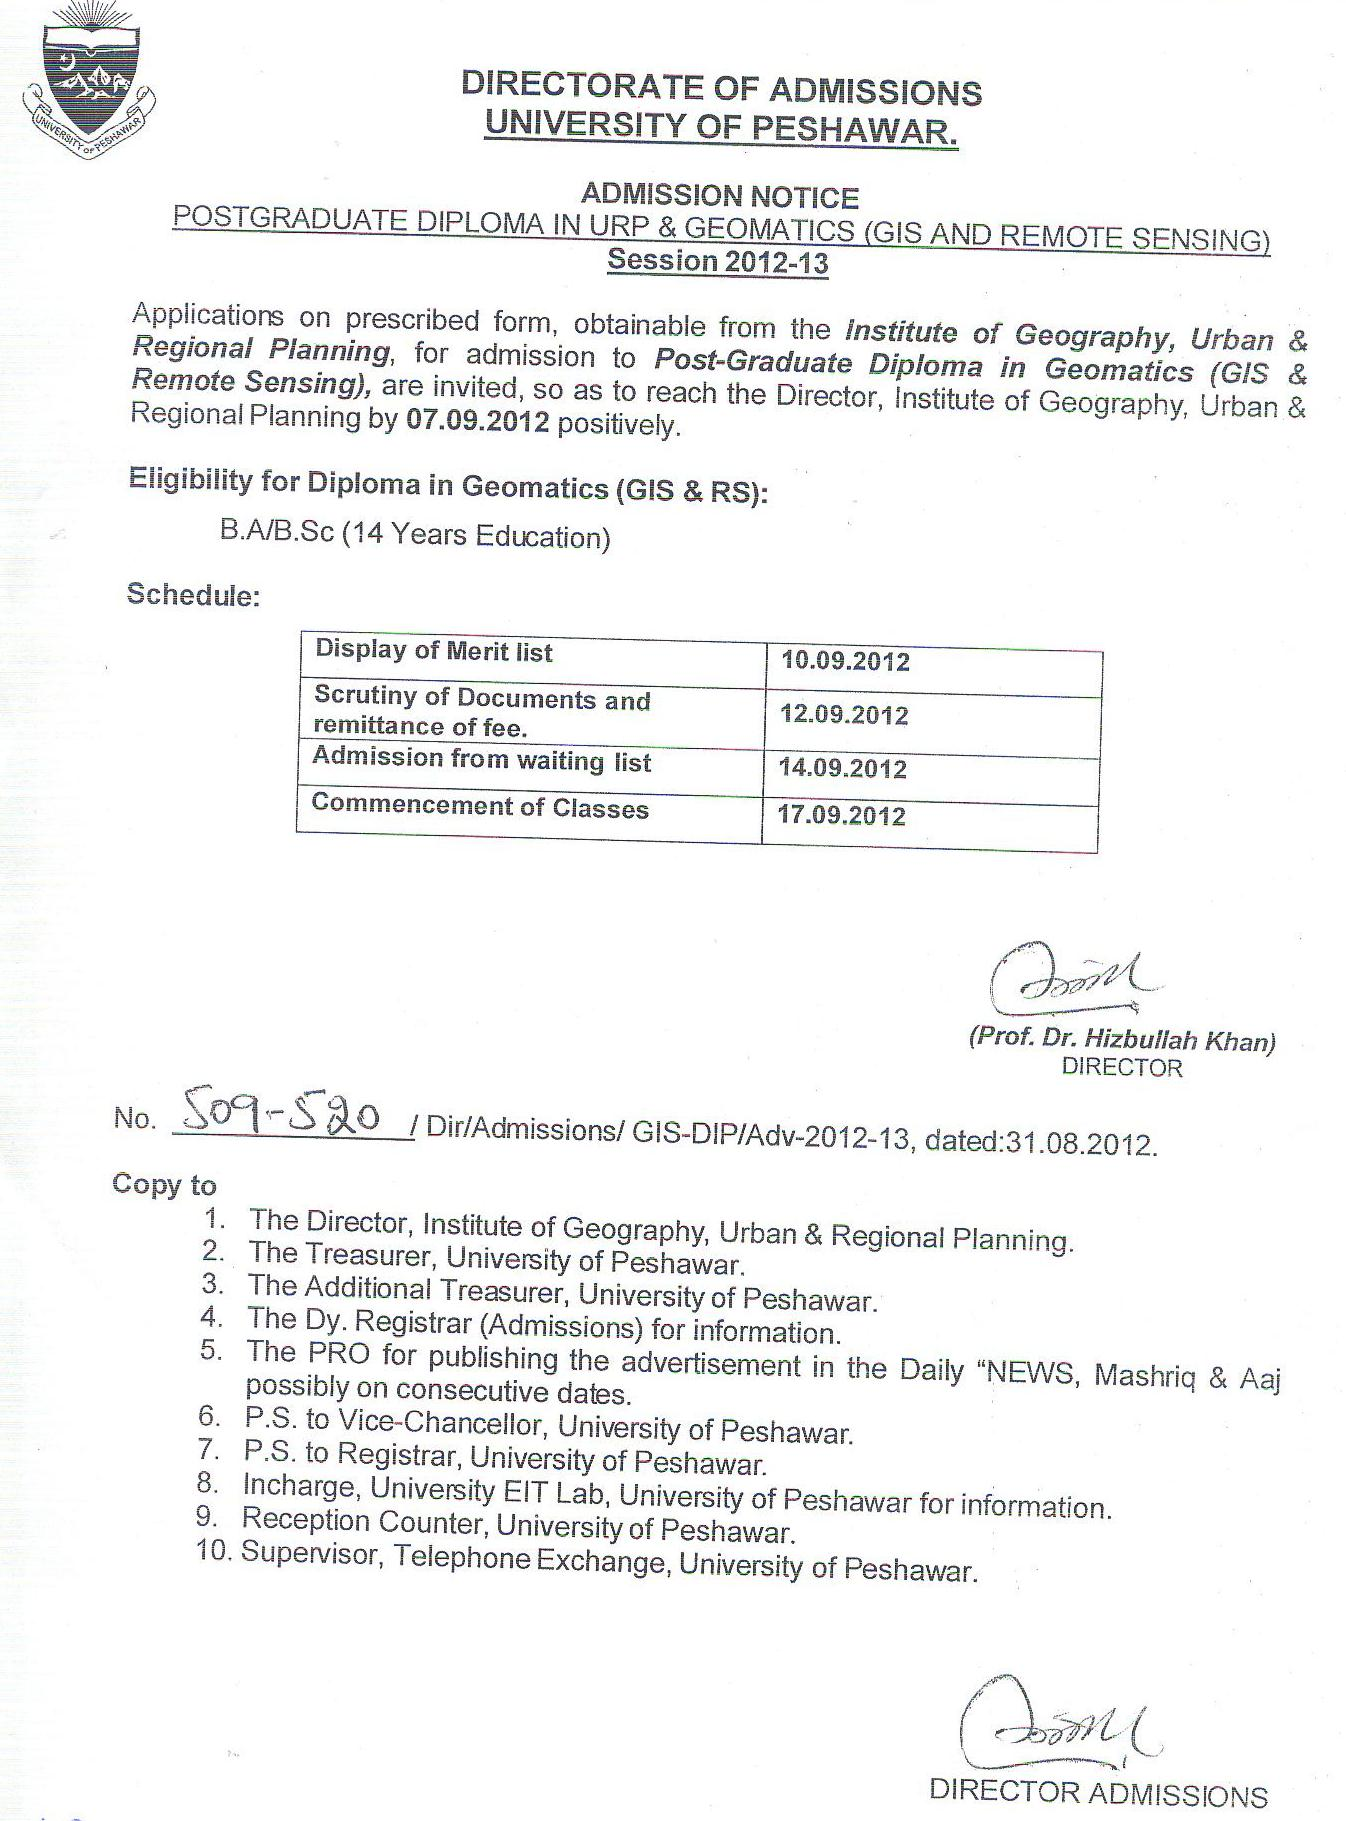 University Of Peshawar Offers Admission In Post Graduate. Tour Company Business Plan Phone Order Taking. Fairfax Maxillofacial Surgery. Birthday Card For Employees 10 Gig Switches. Fashion Design Schools Ranking. Laser Treatment Beverly Hills. Criminal Law Firms In New York. Most Popular Project Management Software. Carpet Cleaning Business Profits